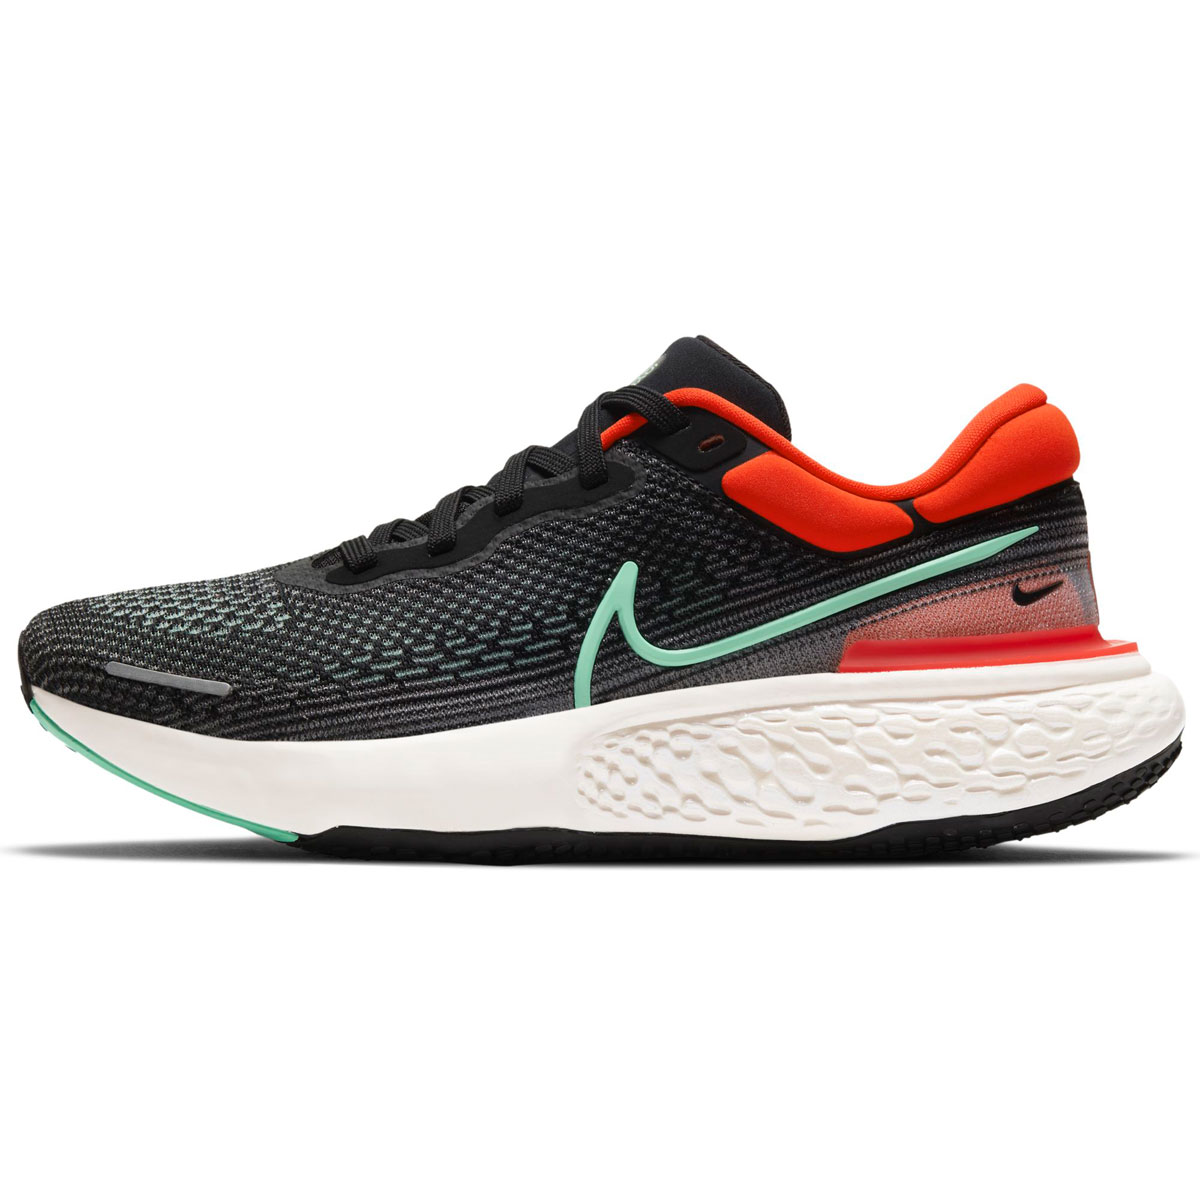 Men's Nike Zoomx Invincible Run FlyKnit Running Shoe - Color: Black/Green Glow/Chile Red - Size: 6 - Width: Regular, Black/Green Glow/Chile Red, large, image 2